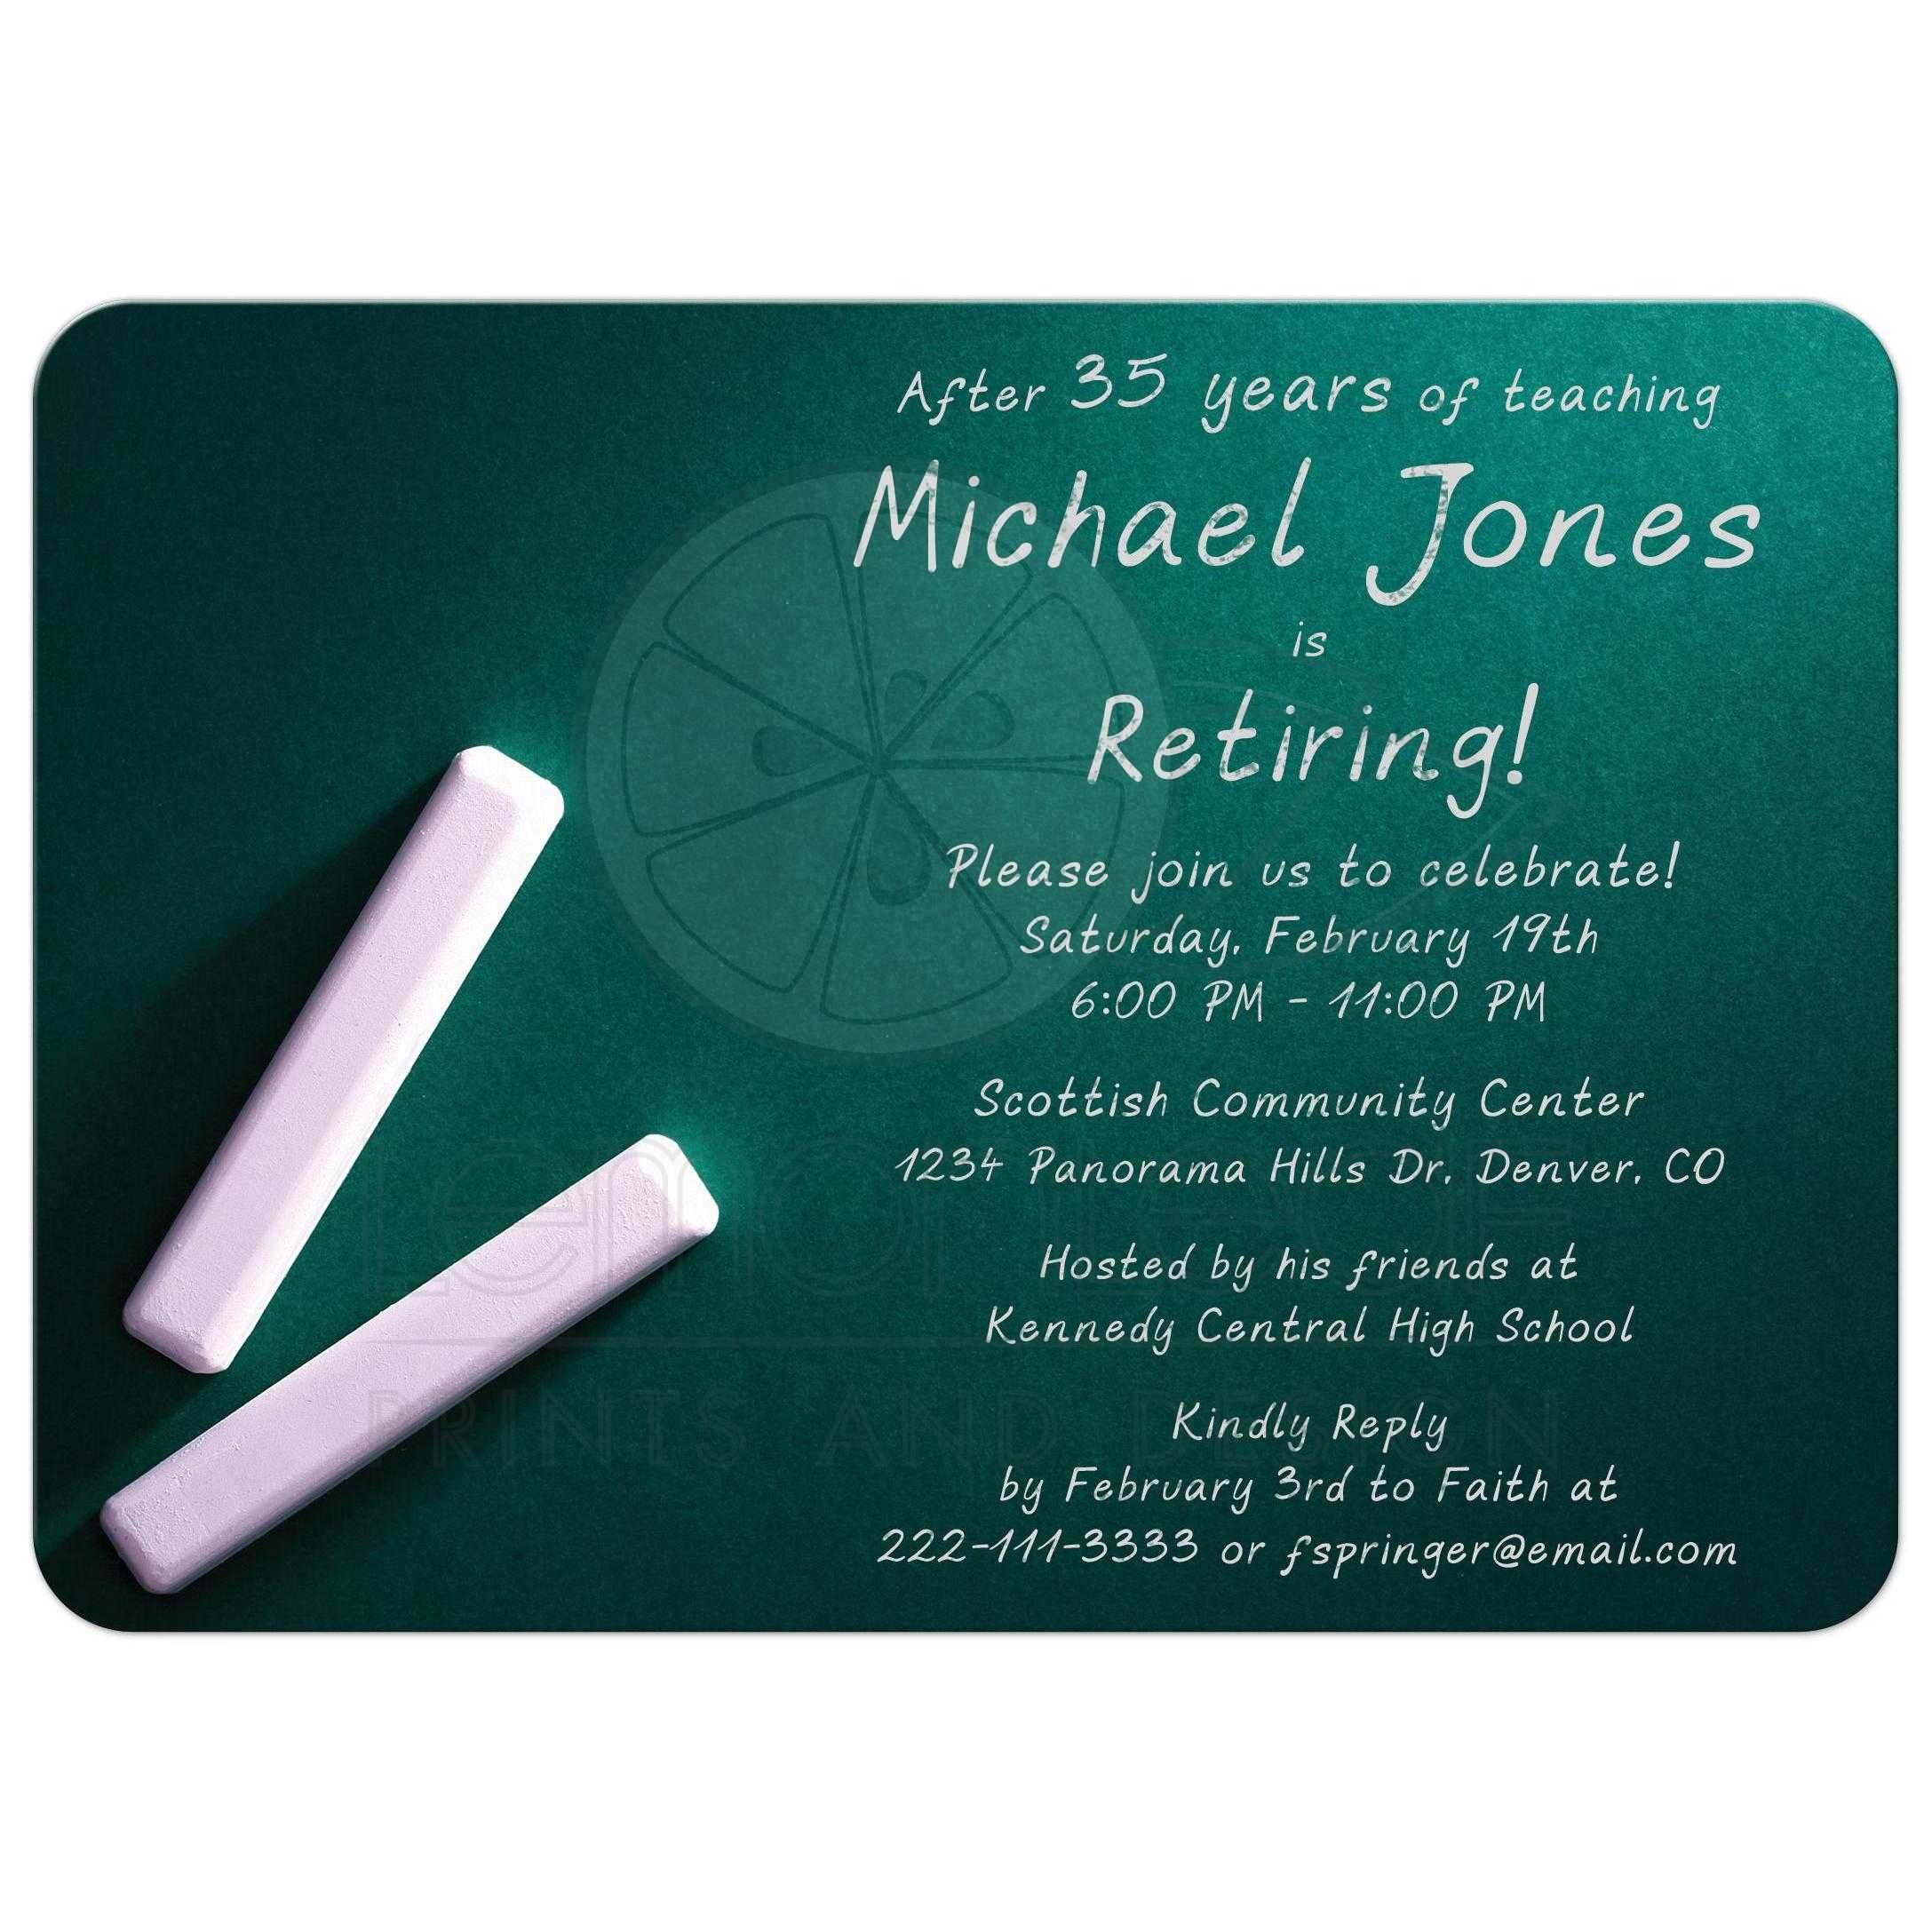 002 Excellent Retirement Party Invitation Template High Def  Templates For Free Nurse M WordFull